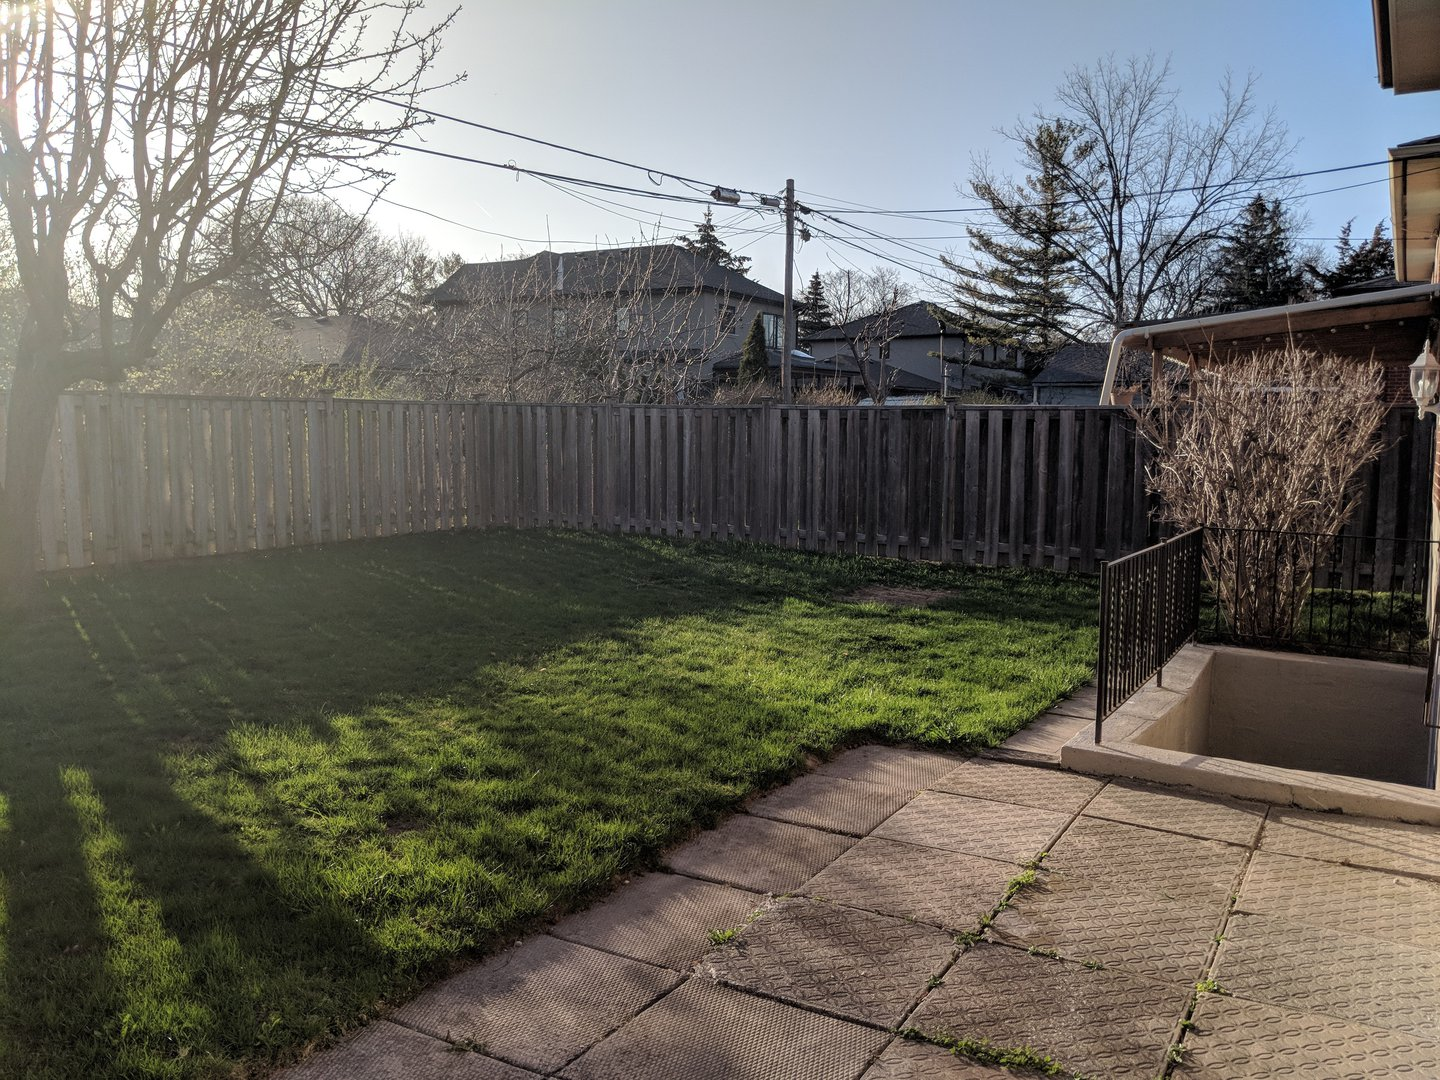 House for rent at 1162 Kipling Ave | Unit: upper, Etobicoke, ON. This is the backyard with lawn.